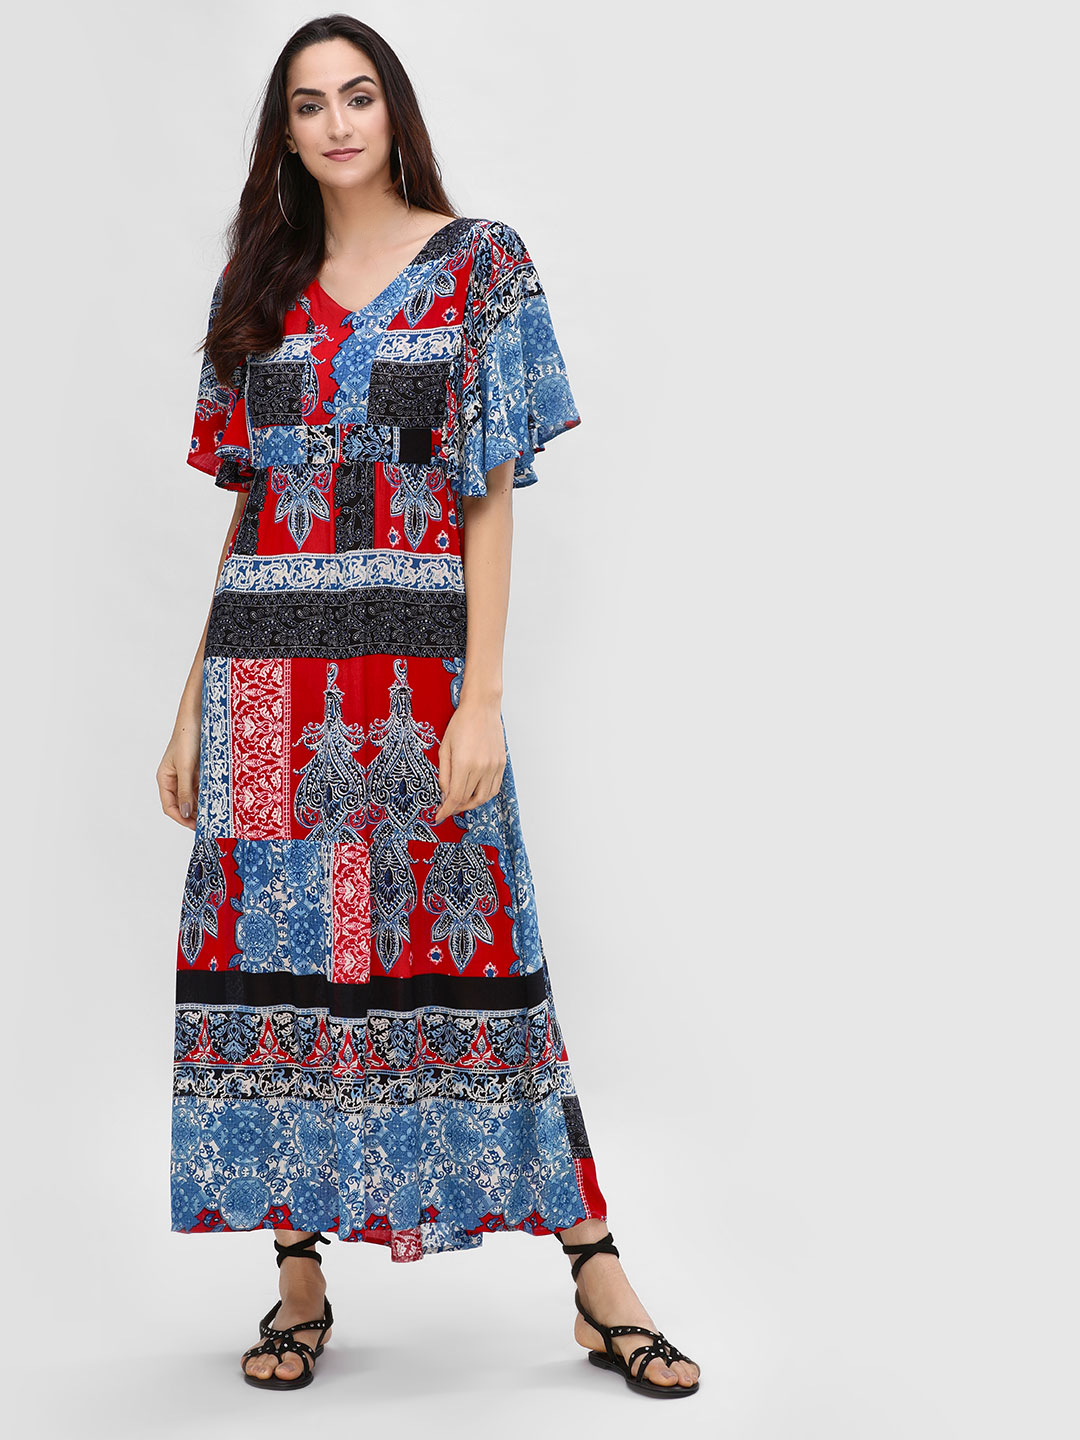 Rena Love Print Maxi Dress With Flared Sleeves 1